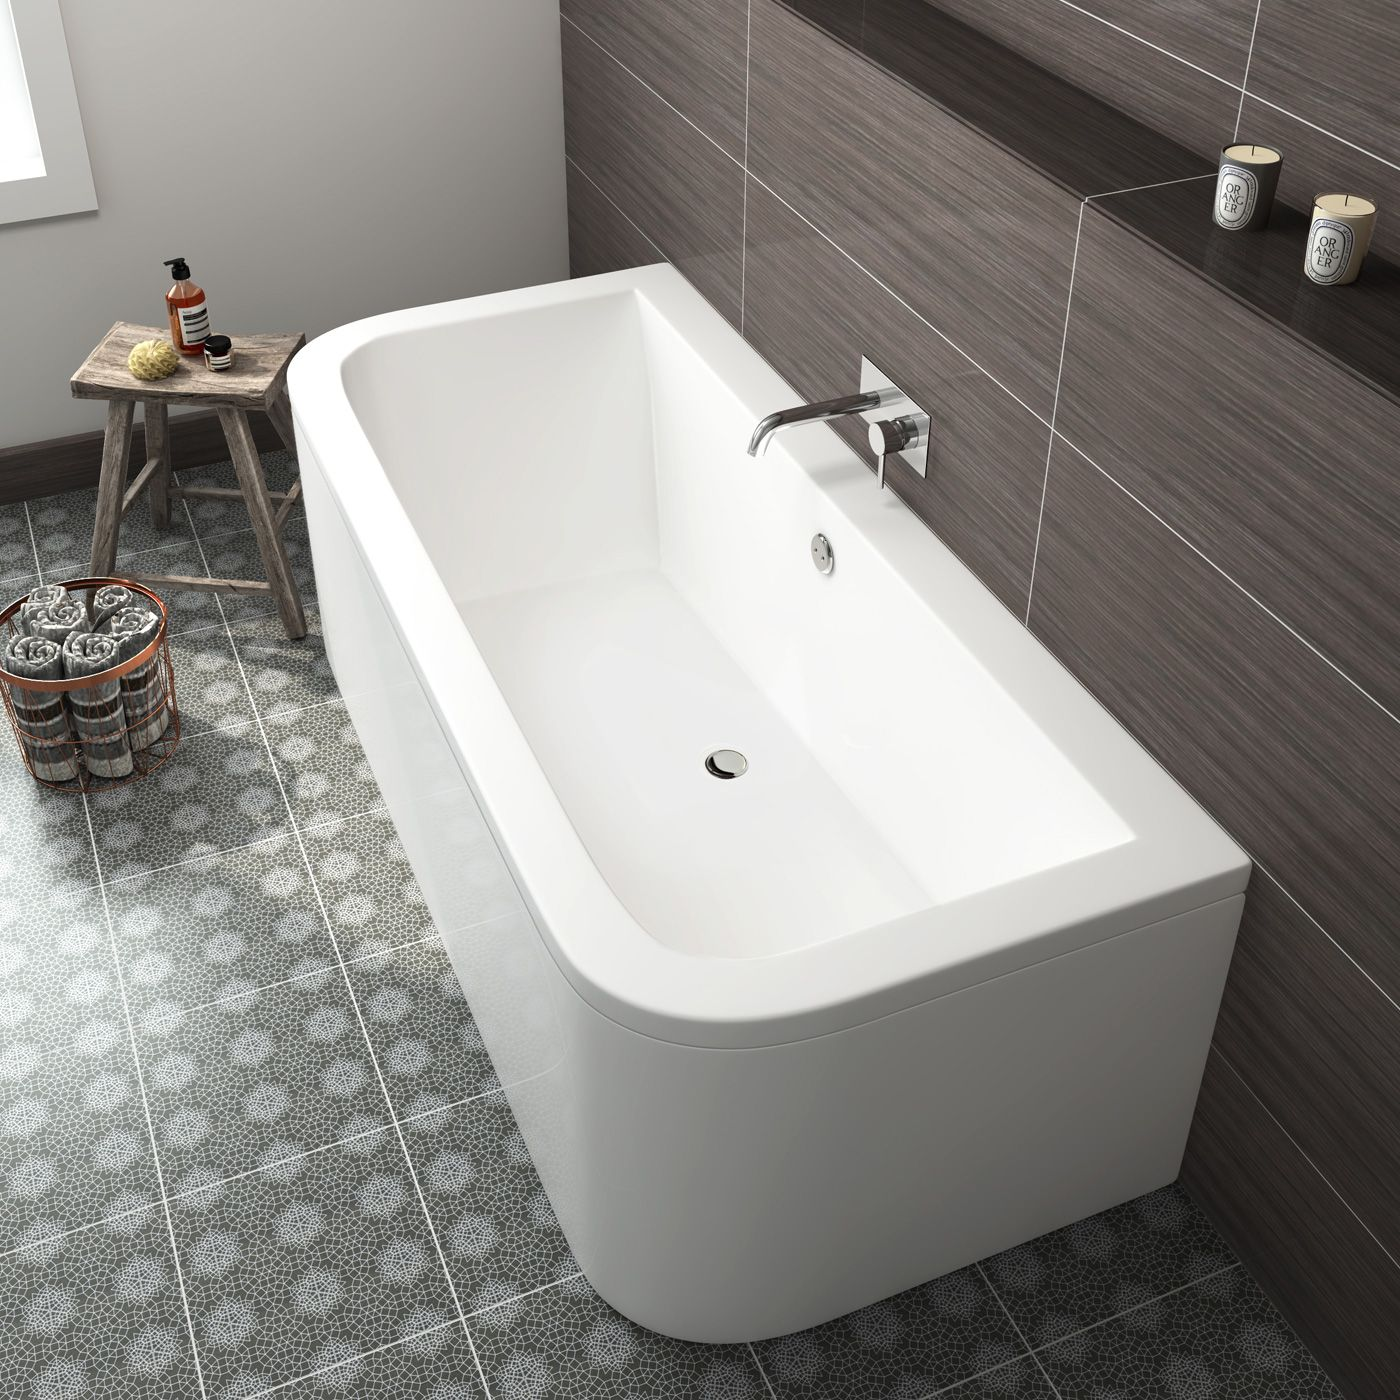 Are You Looking For The Bathroom Of Your Dreams Stunning At Low - Bathroom panels for walls for bathroom decor ideas